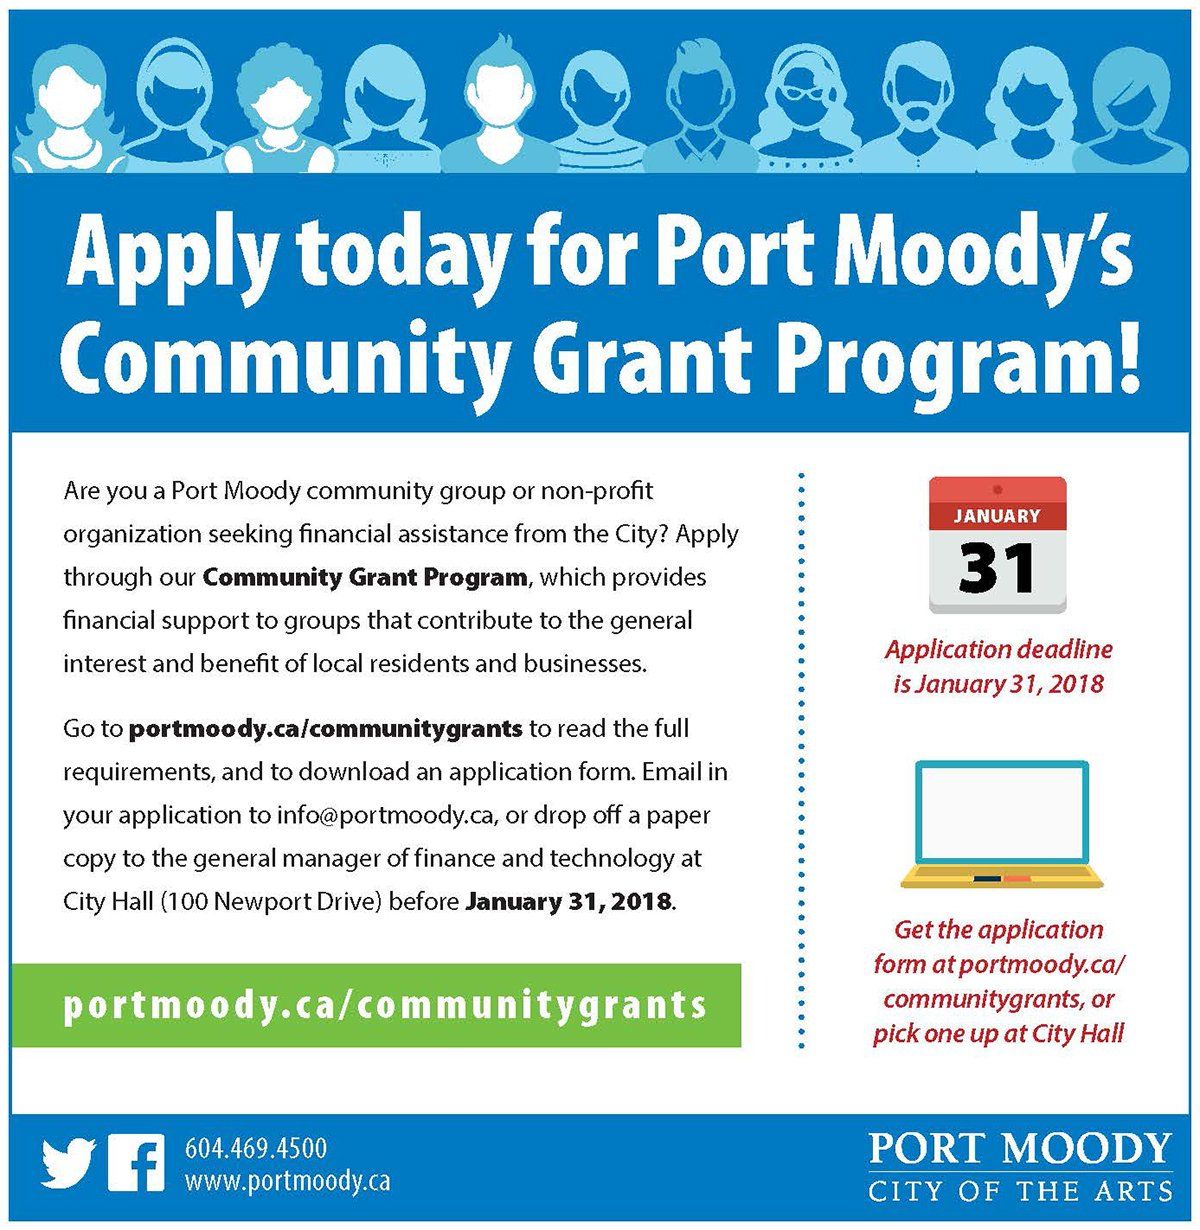 City of Port Moody on Twitter: